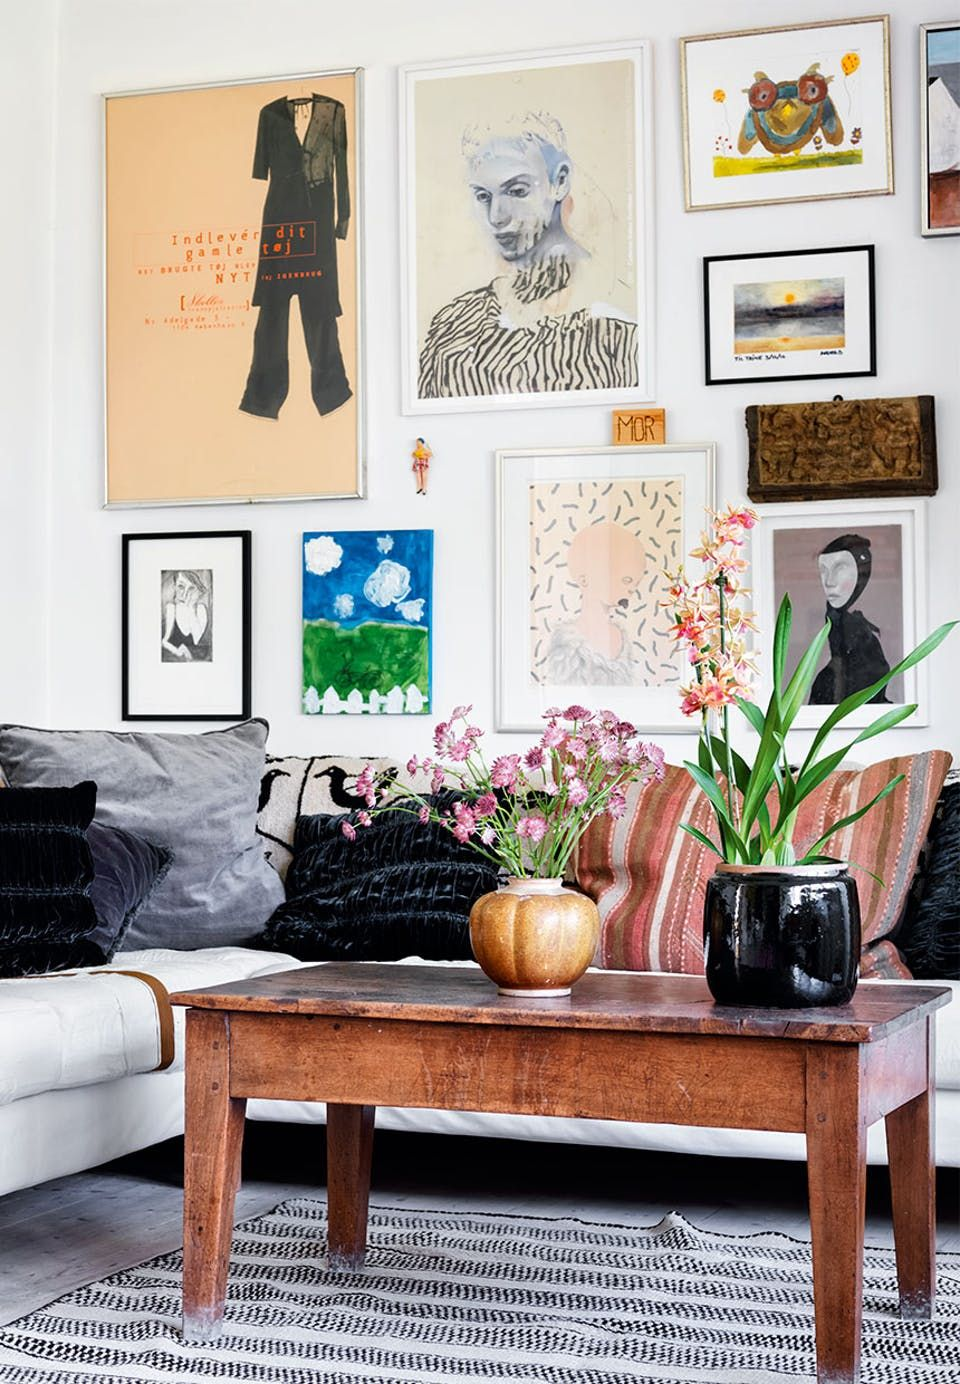 Go all in on a personal gallery wall with homemade pictures and